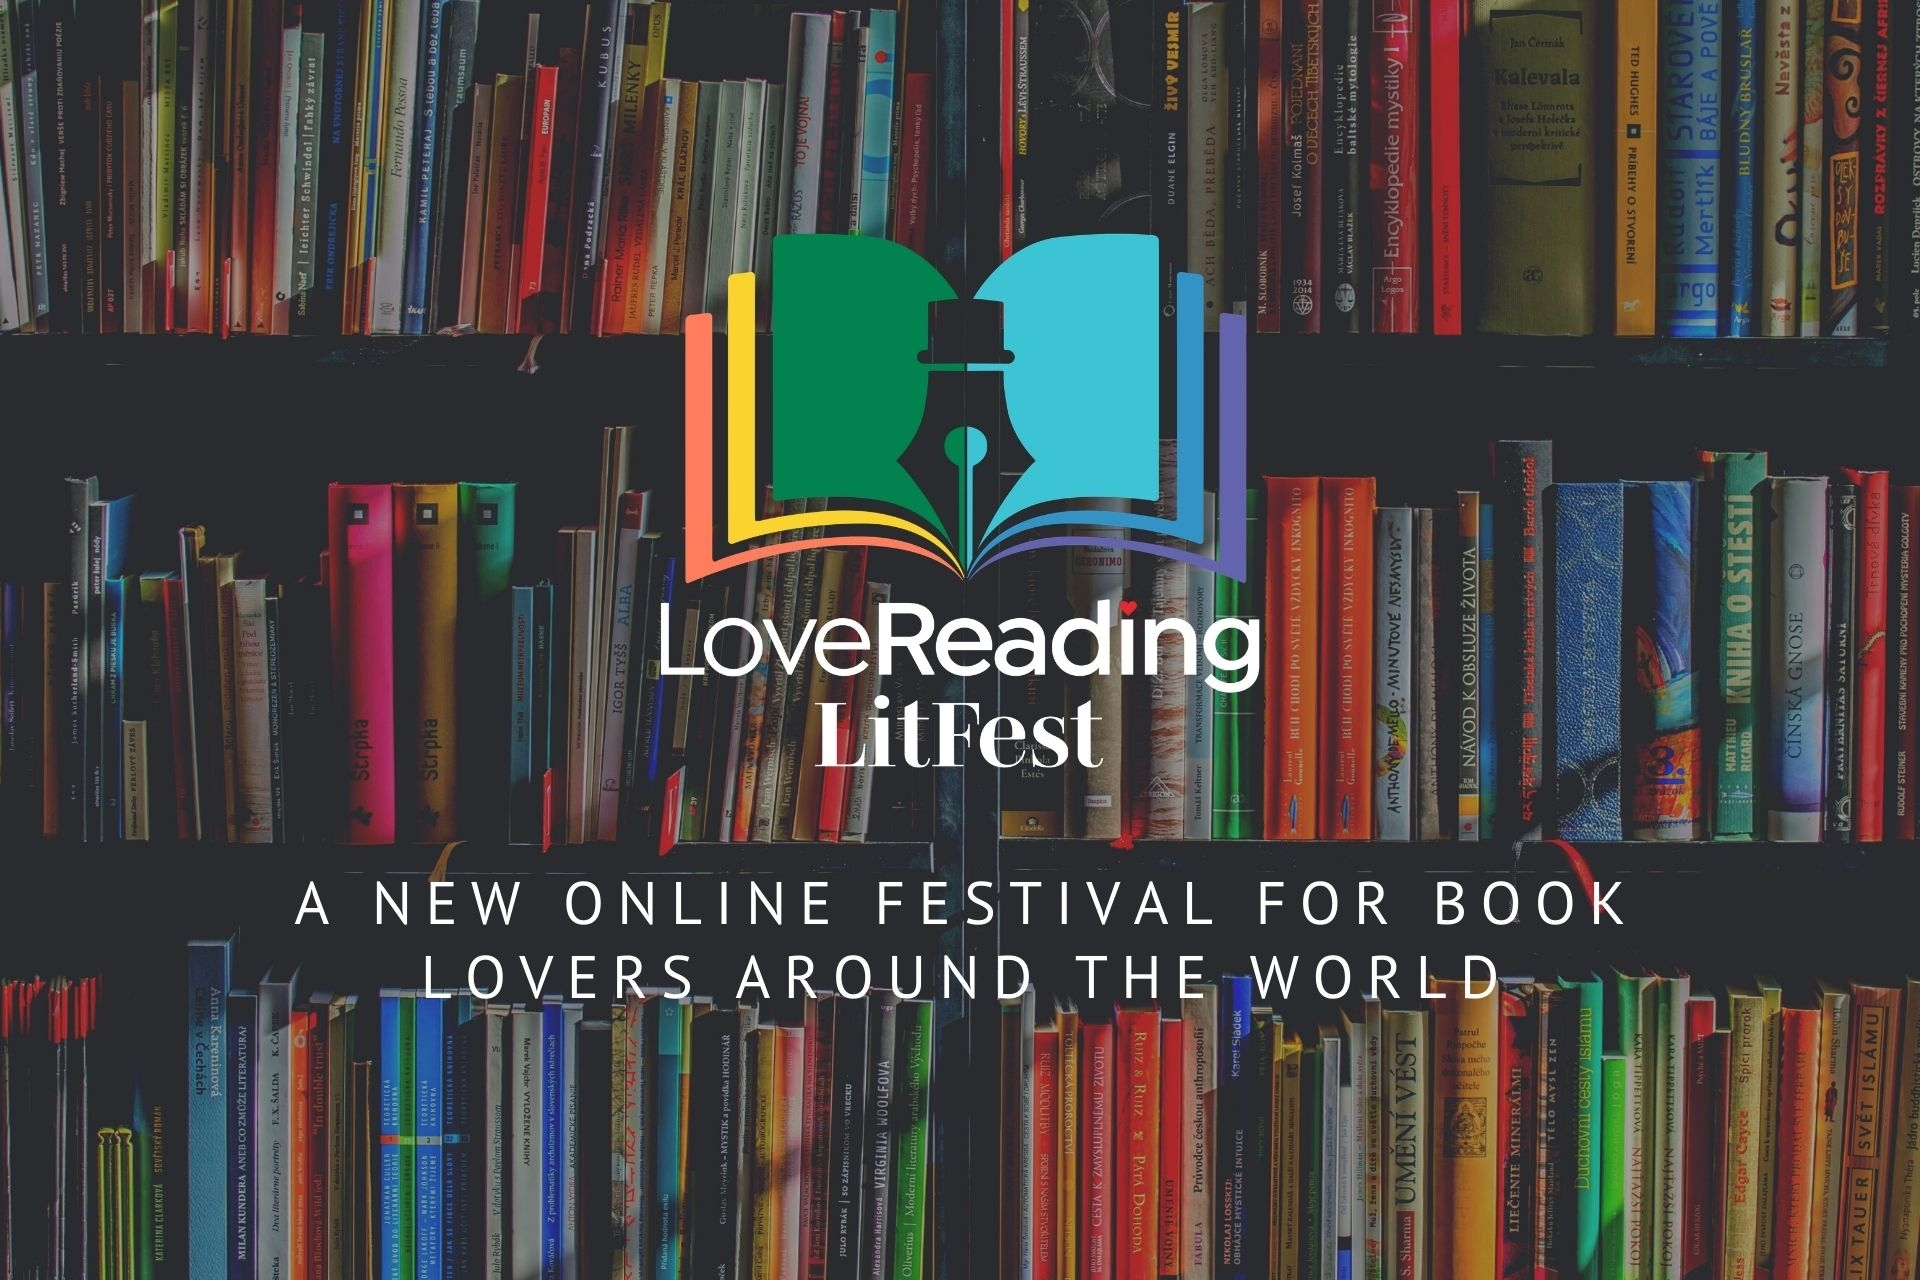 LoveReading LitFest - a New Online Festival for Book Lovers Around the World - Has Launched